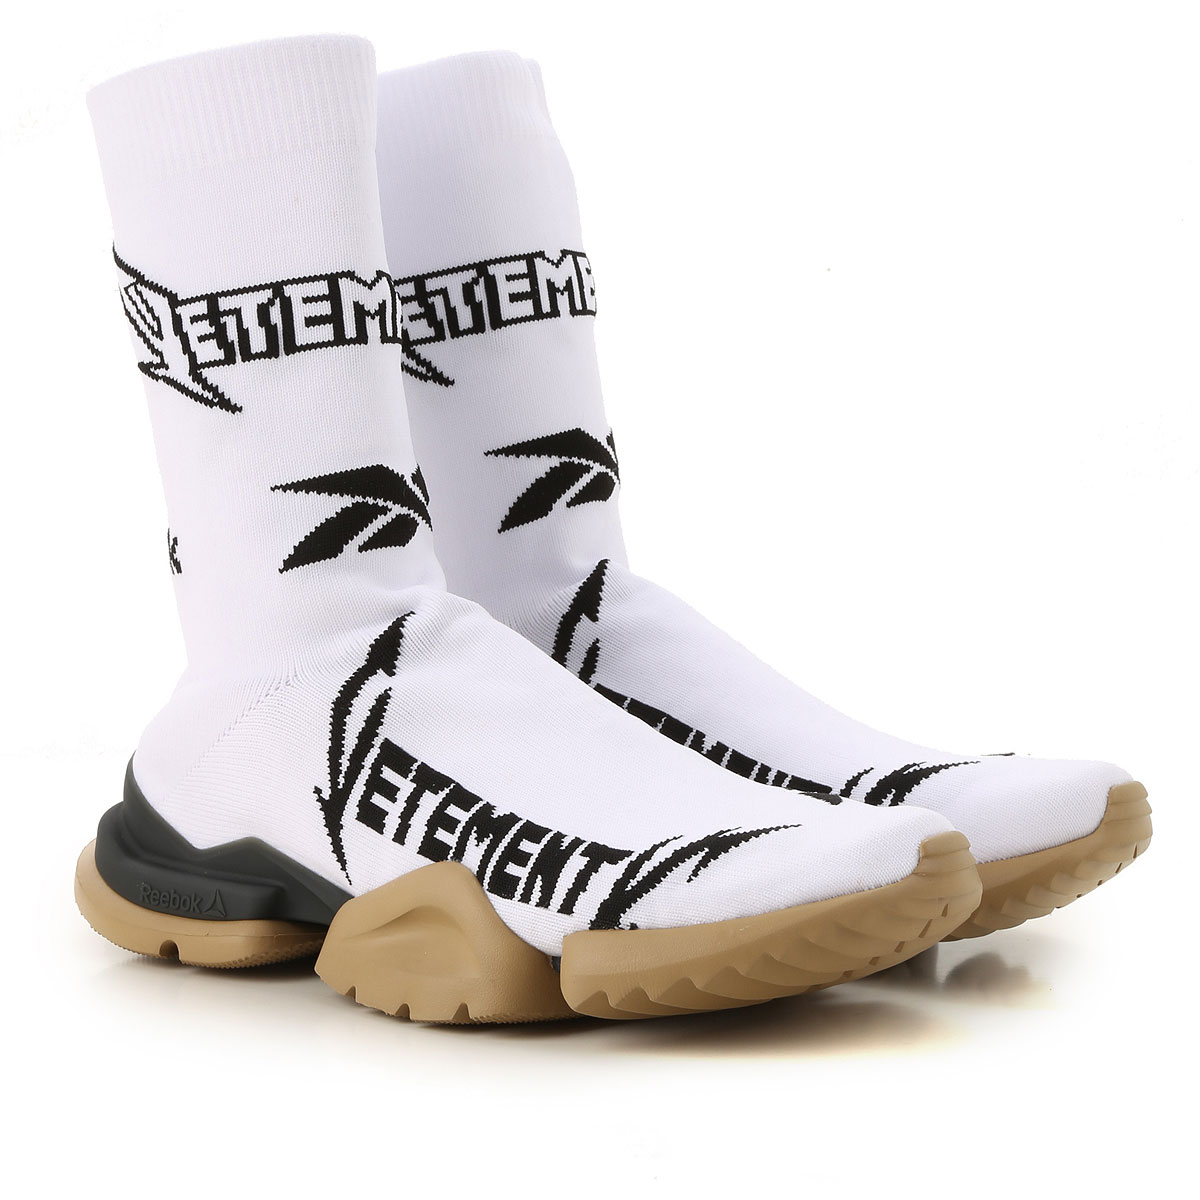 Vetements Sneakers for Men in Outlet White USA - GOOFASH